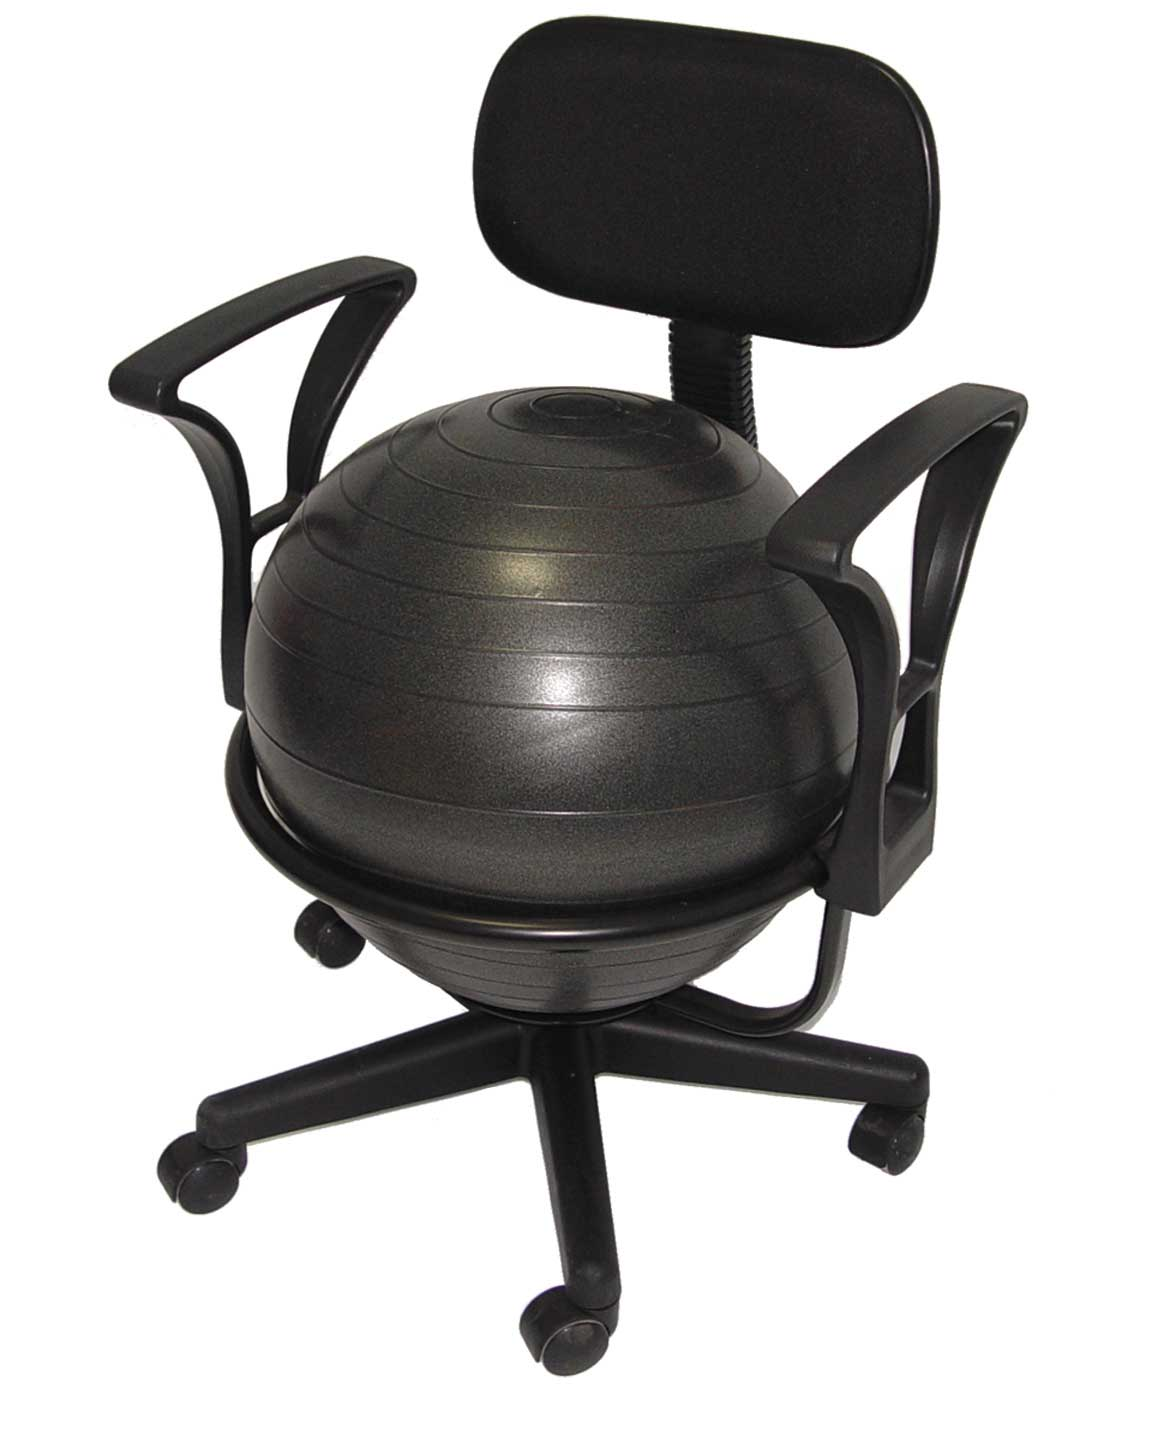 Ergonomic Ball Chair for Office